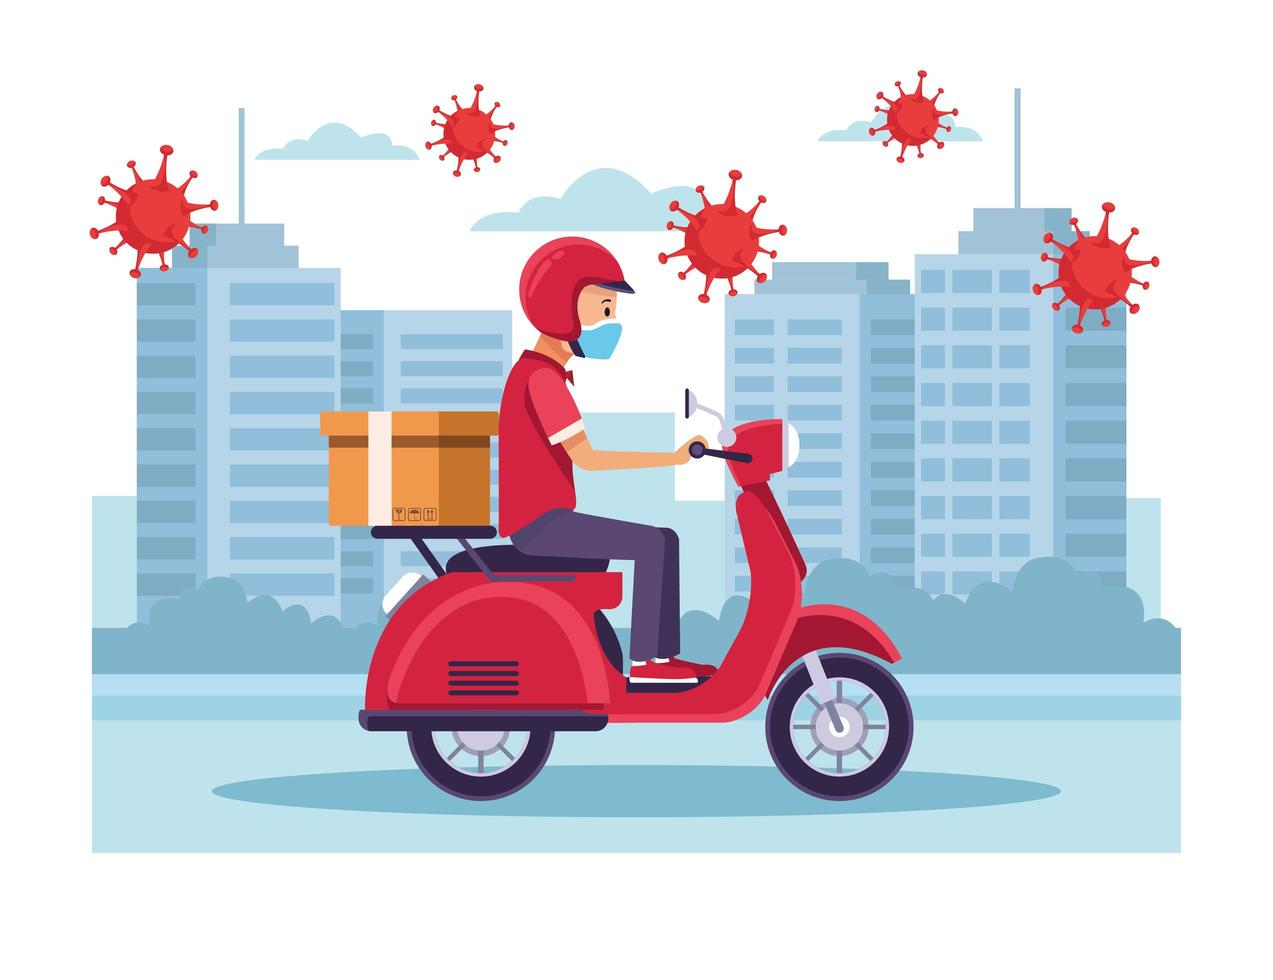 Courier in Motorcycle Delivery Service with COVID-19 Particles vector